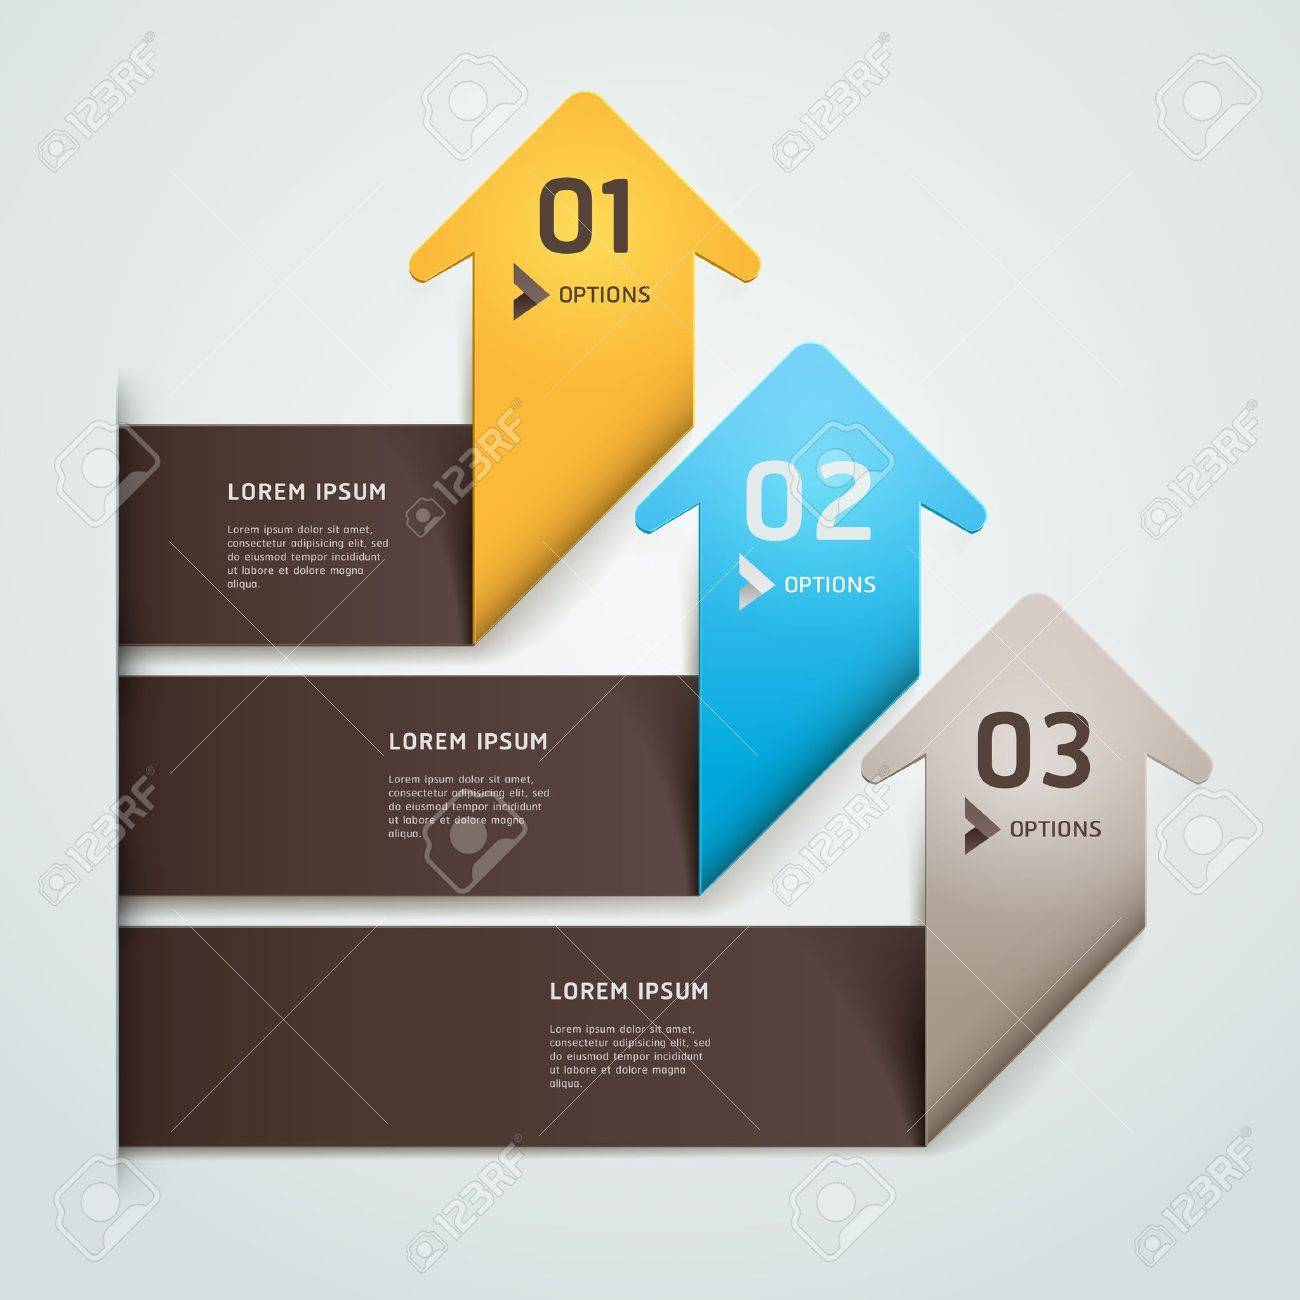 Modern arrow origami style step up number options banner template   illustration  can be used for workflow layout, diagram, web design, infographics Stock Vector - 17665202